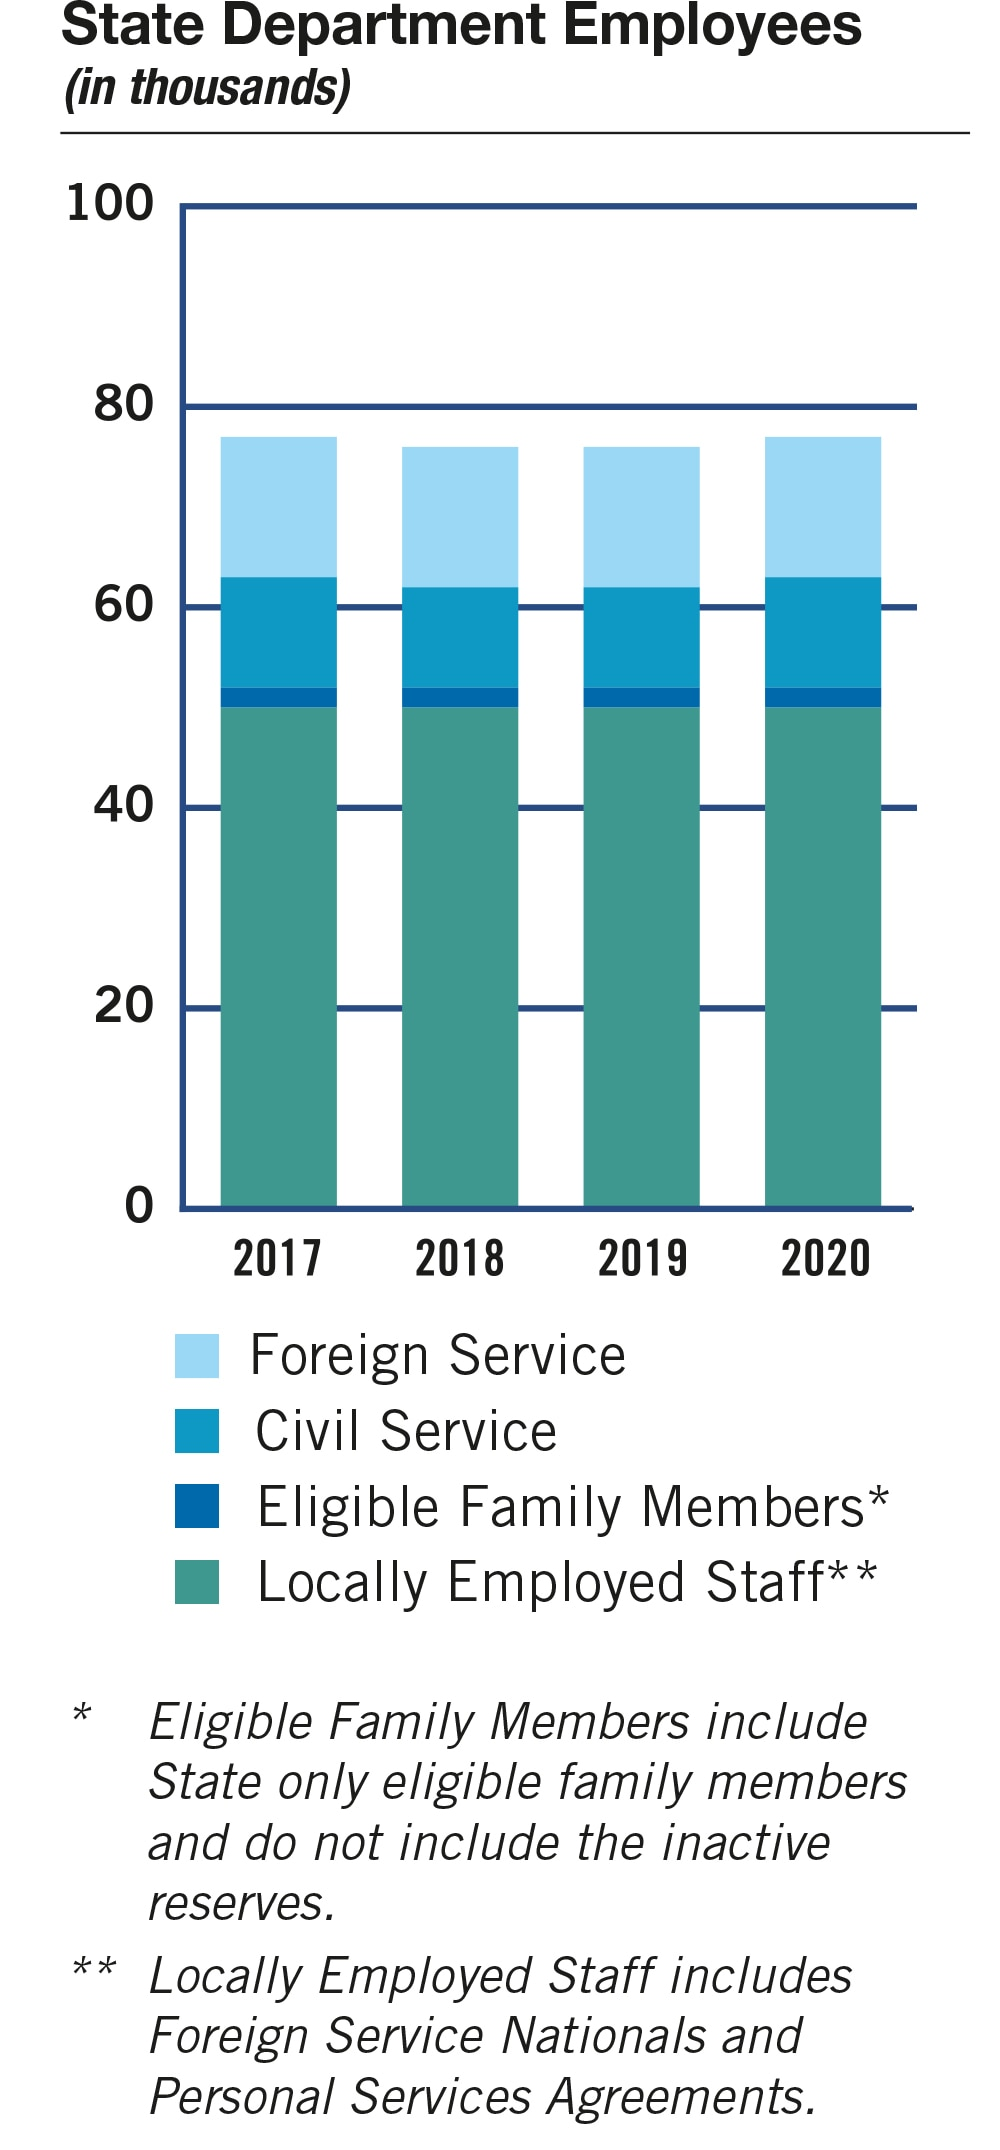 Bar chart of State employees for 2017-2020 broken down by Foreign Service, Civil Service, Eligible Family Members (see Note 1) and Locally Employed Staff (see Note 2). In thousands: FY 2017: Foreign Service: 14; Civil Service: 11; Eligible Family Members: 2; Locally Employed Staff: 50. FY 2018: Foreign Service: 14; Civil Service: 10; Eligible Family Members: 2; Locally Employed Staff: 50. FY 2019: Foreign Service: 14; Civil Service: 10; Eligible Family Members: 2; Locally Employed Staff: 50. FY 2020: Foreign Service: 14; Civil Service: 11; Eligible Family Members: 2; Locally Employed Staff: 50. Notes: 1. Eligible Family Members include State only eligible family members and do not include the inactive reserves. 2. Locally Employed Staff includes Foreign Service Nationals and Personal Services Agreements.